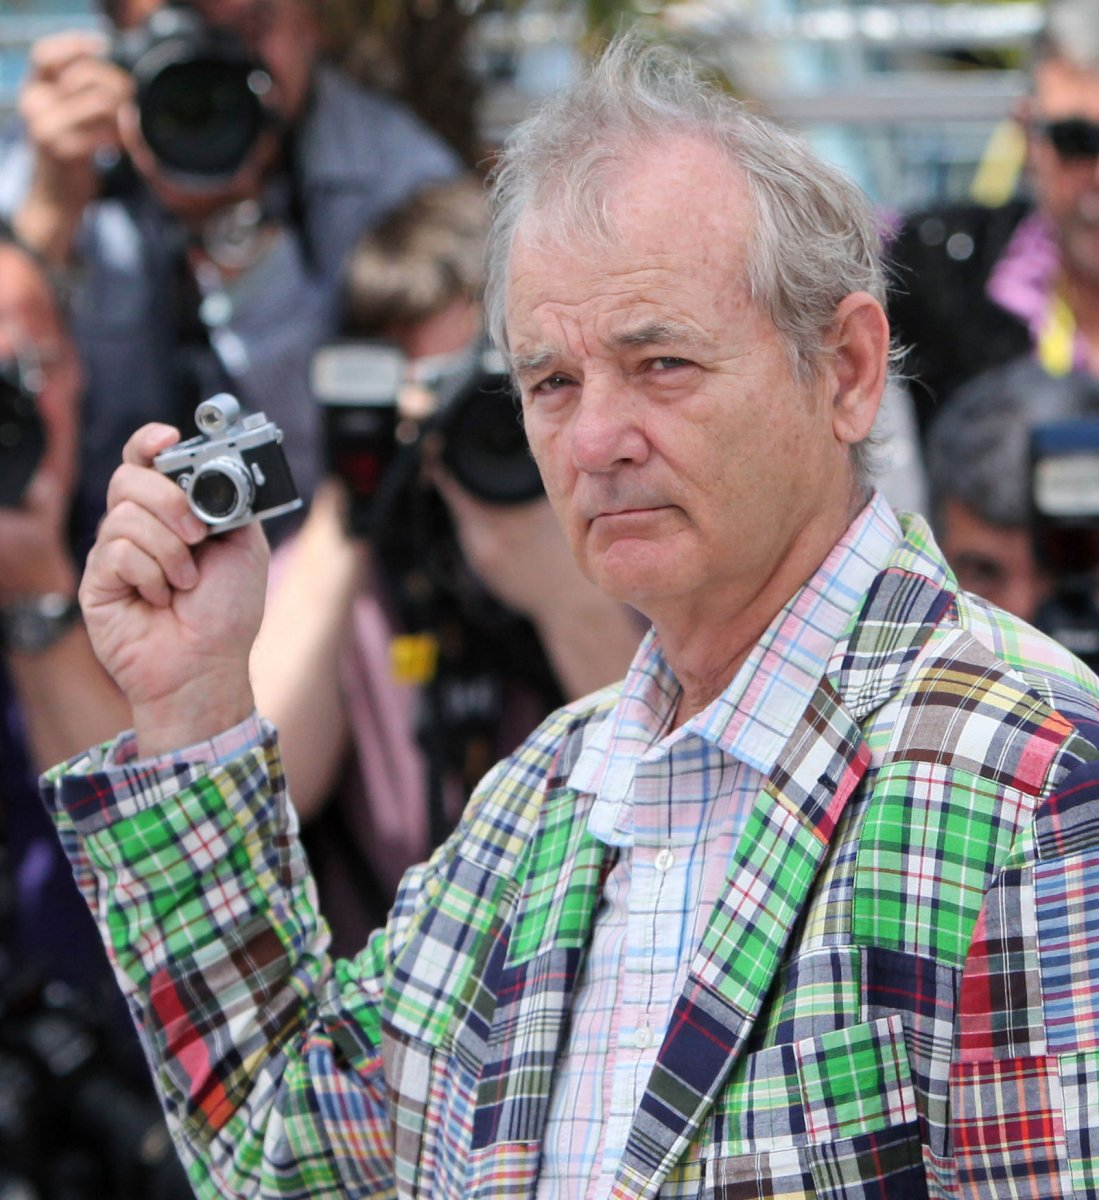 bill murray coloring book published upicom - Bill Murray Coloring Book